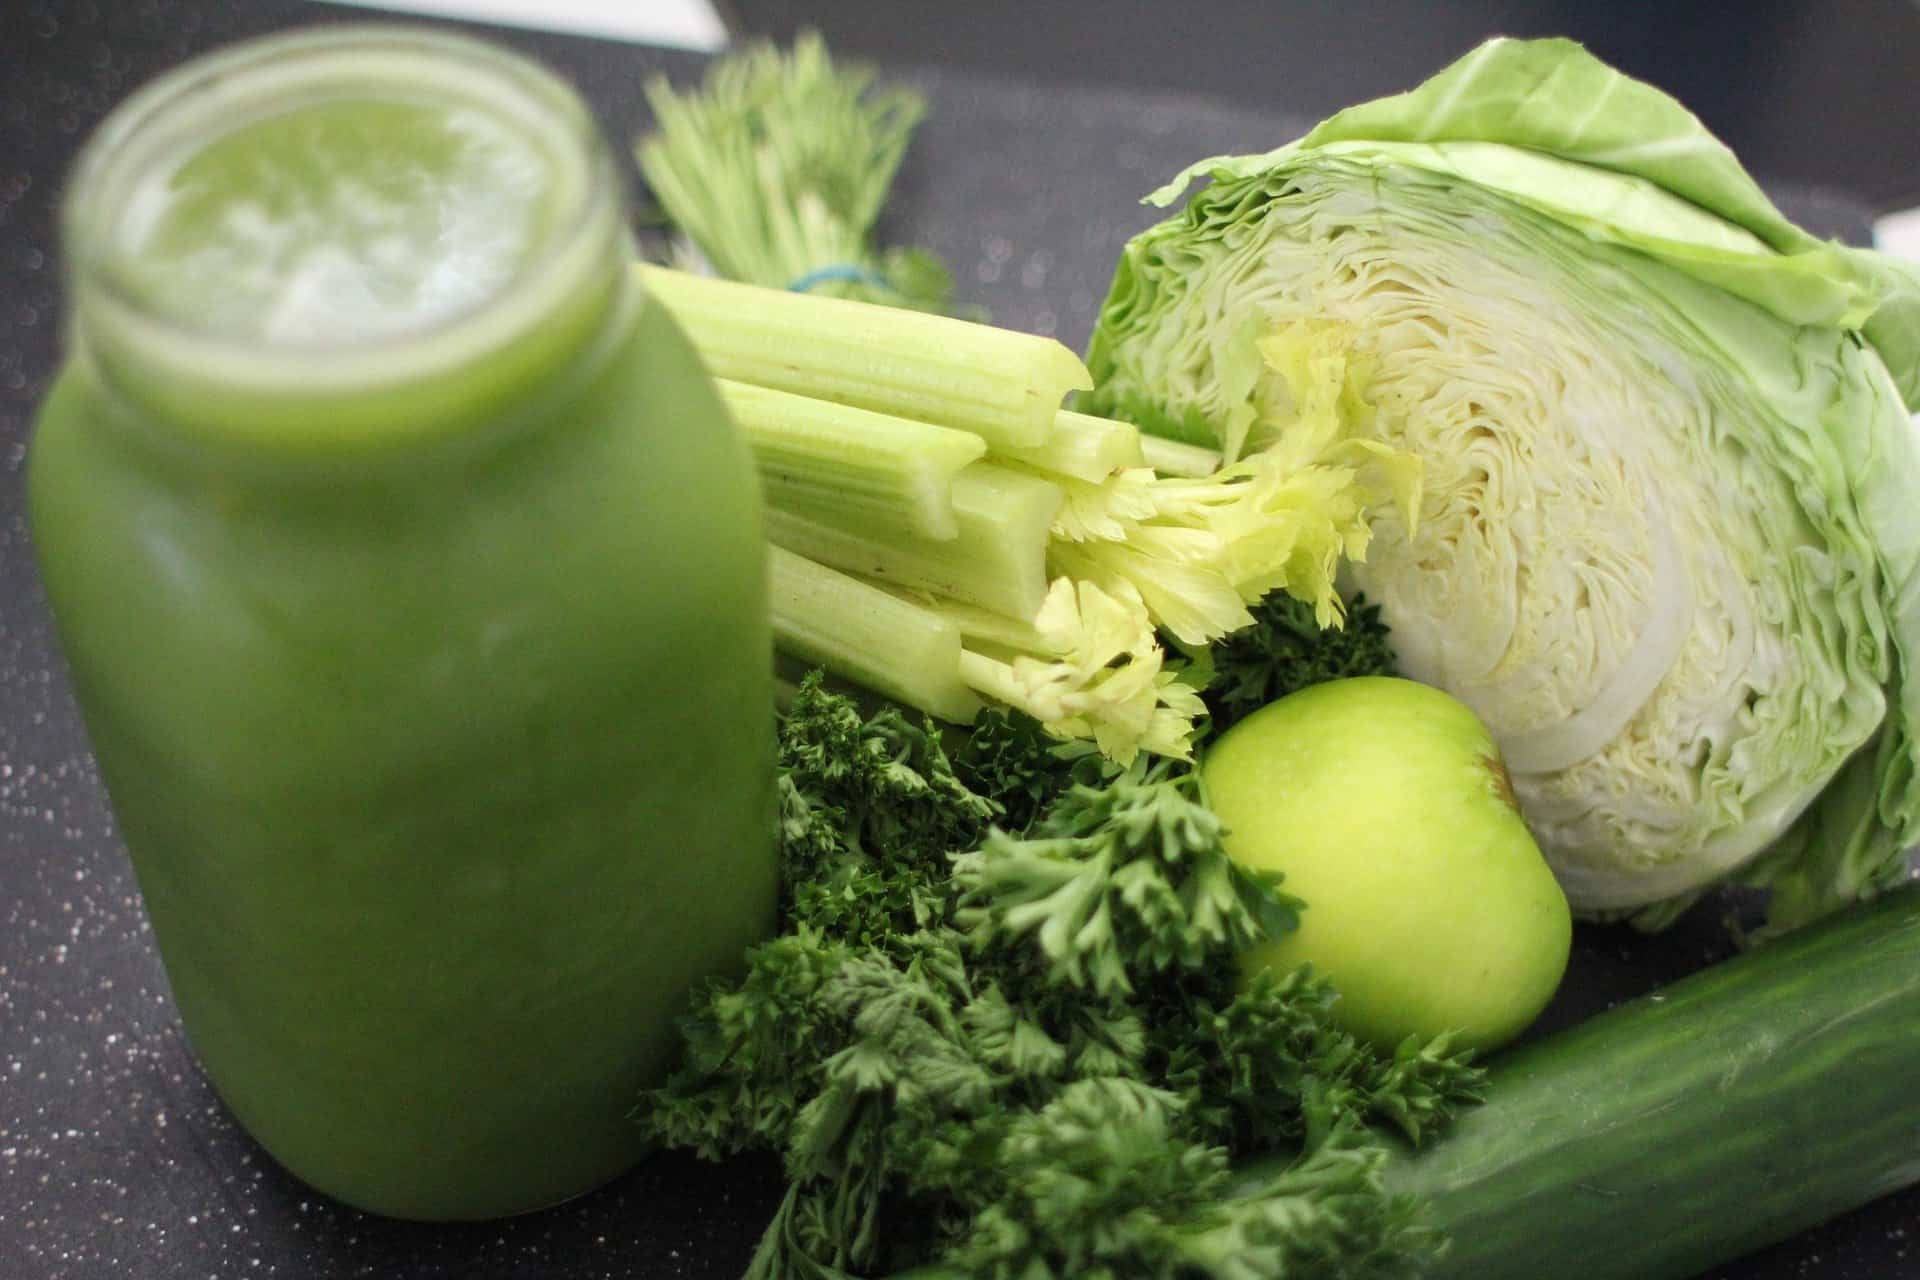 Use Vegetable Juice as an appetite suppressant